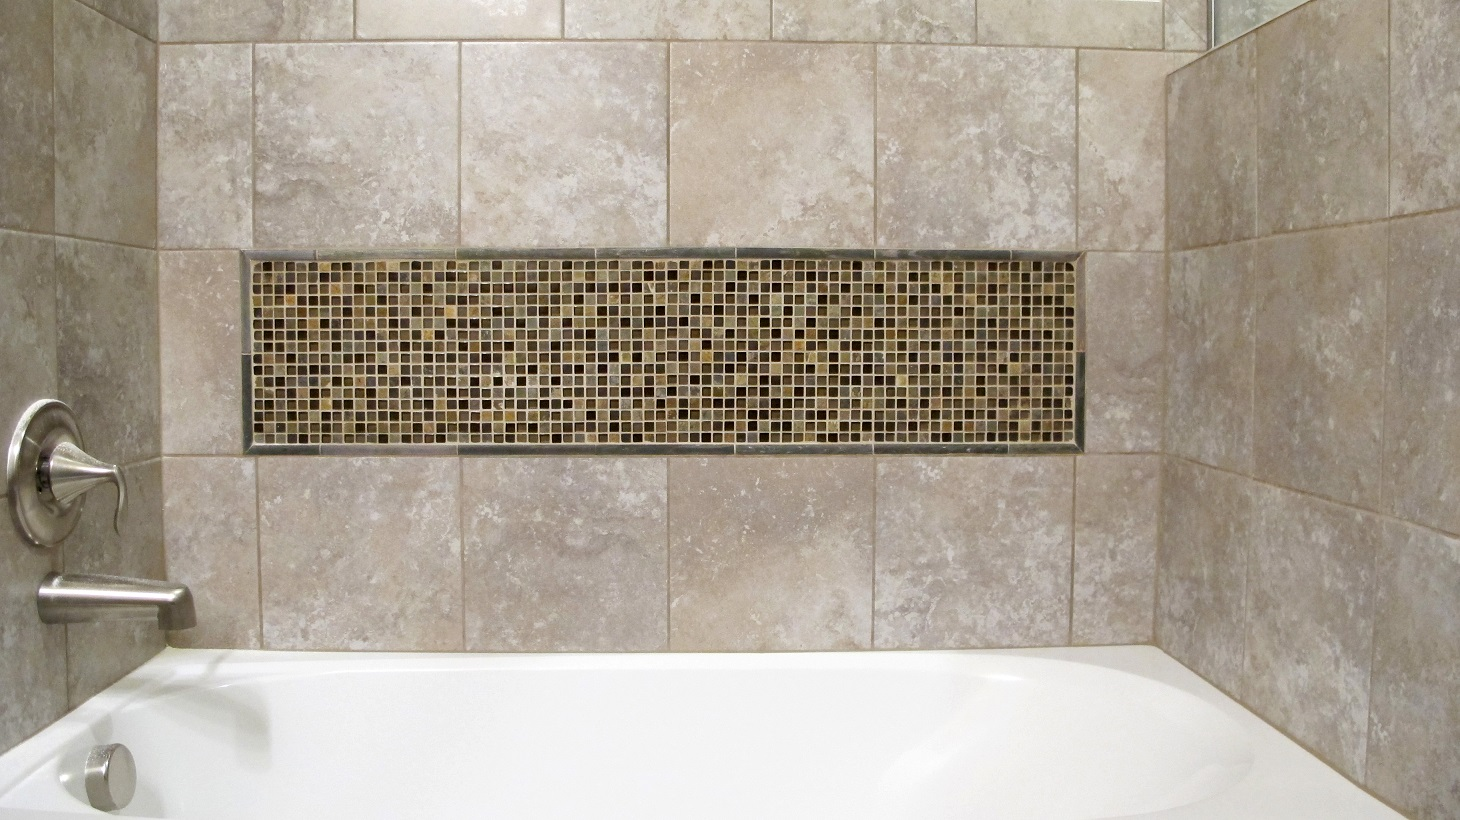 Guest Bathroom slide in bath tub with tile surround and decorative mosaic insert slate glass mix brushed nickel Sandalo Castillian Gray Daltile Stone Radiance Saddle Blend Customs Grout Light Smoke